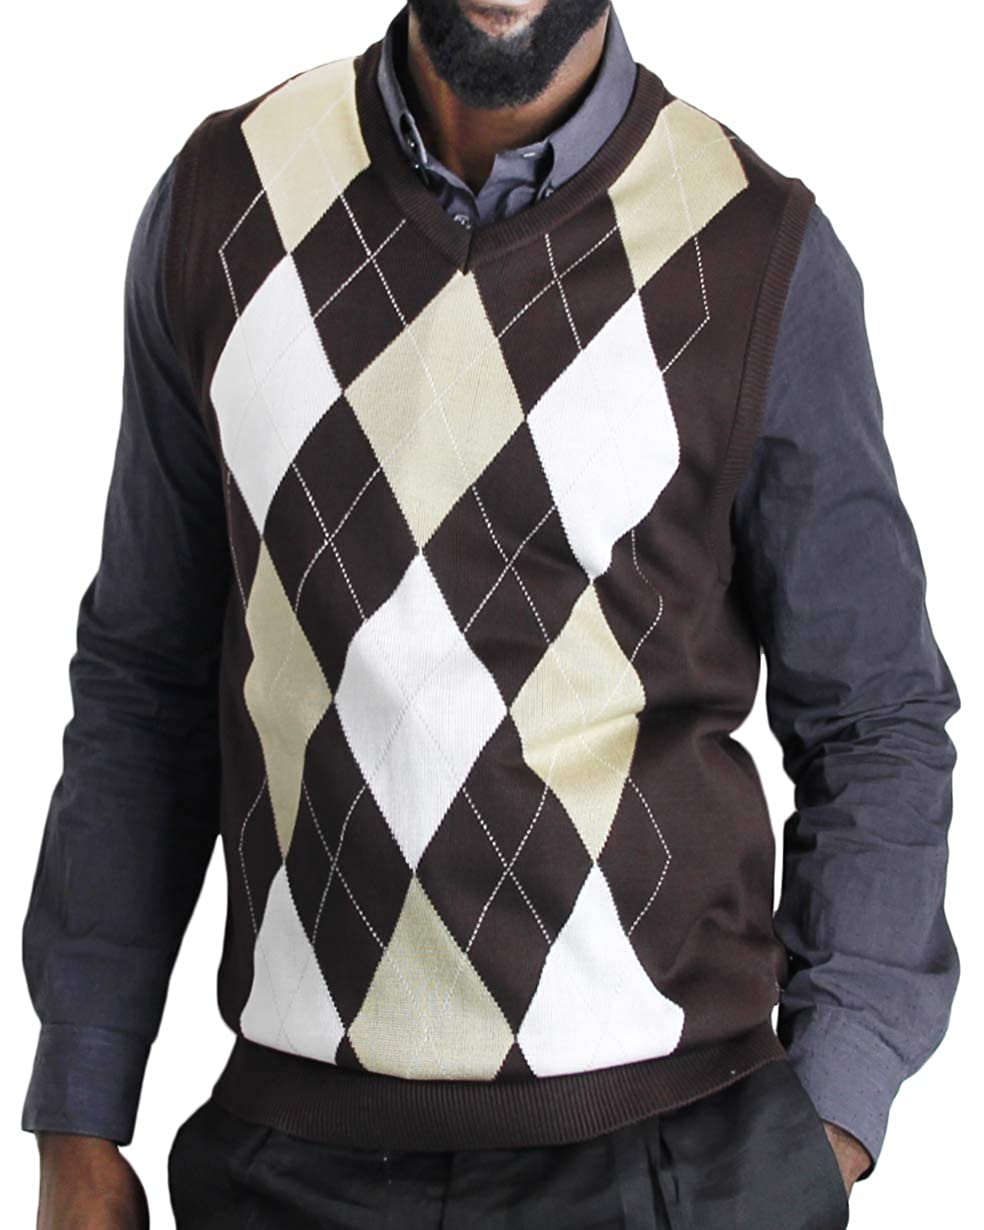 1920s Fashion for Men Blue Ocean Argyle Sweater Vest $25.50 AT vintagedancer.com